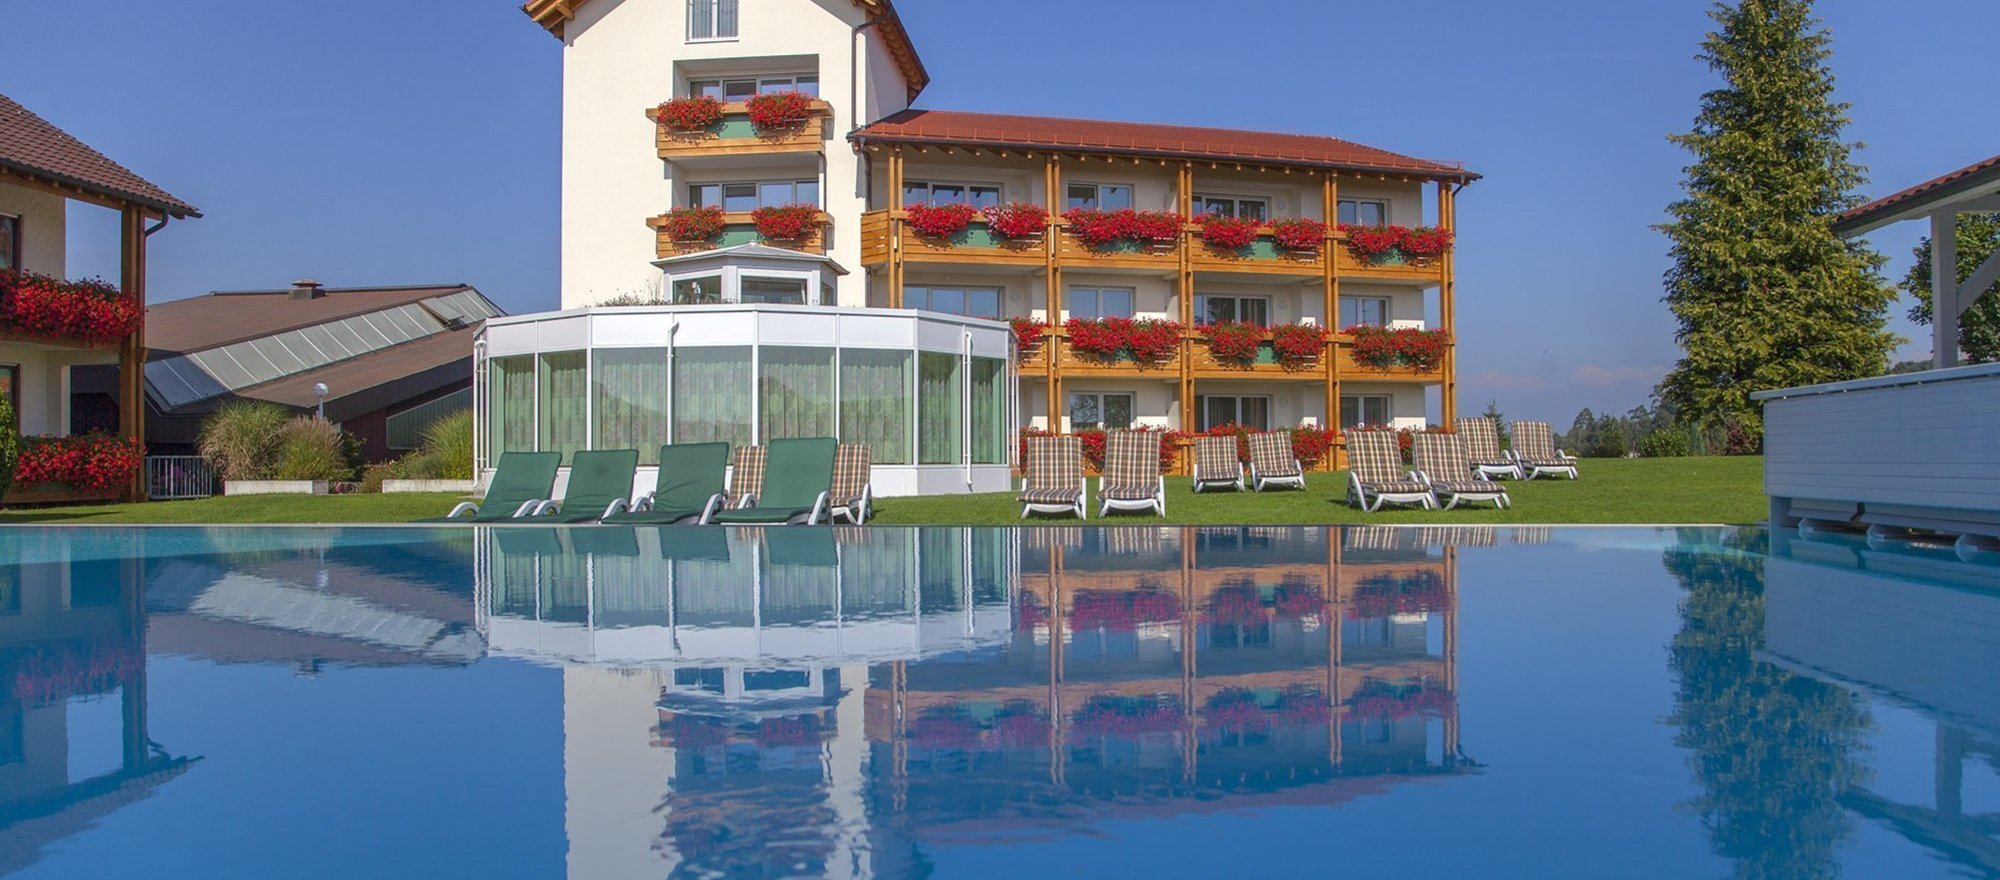 Open air swimming pool in the Ringhotel Krone in Friedrichshafen, 4 stars superior hotel at Lake Constance